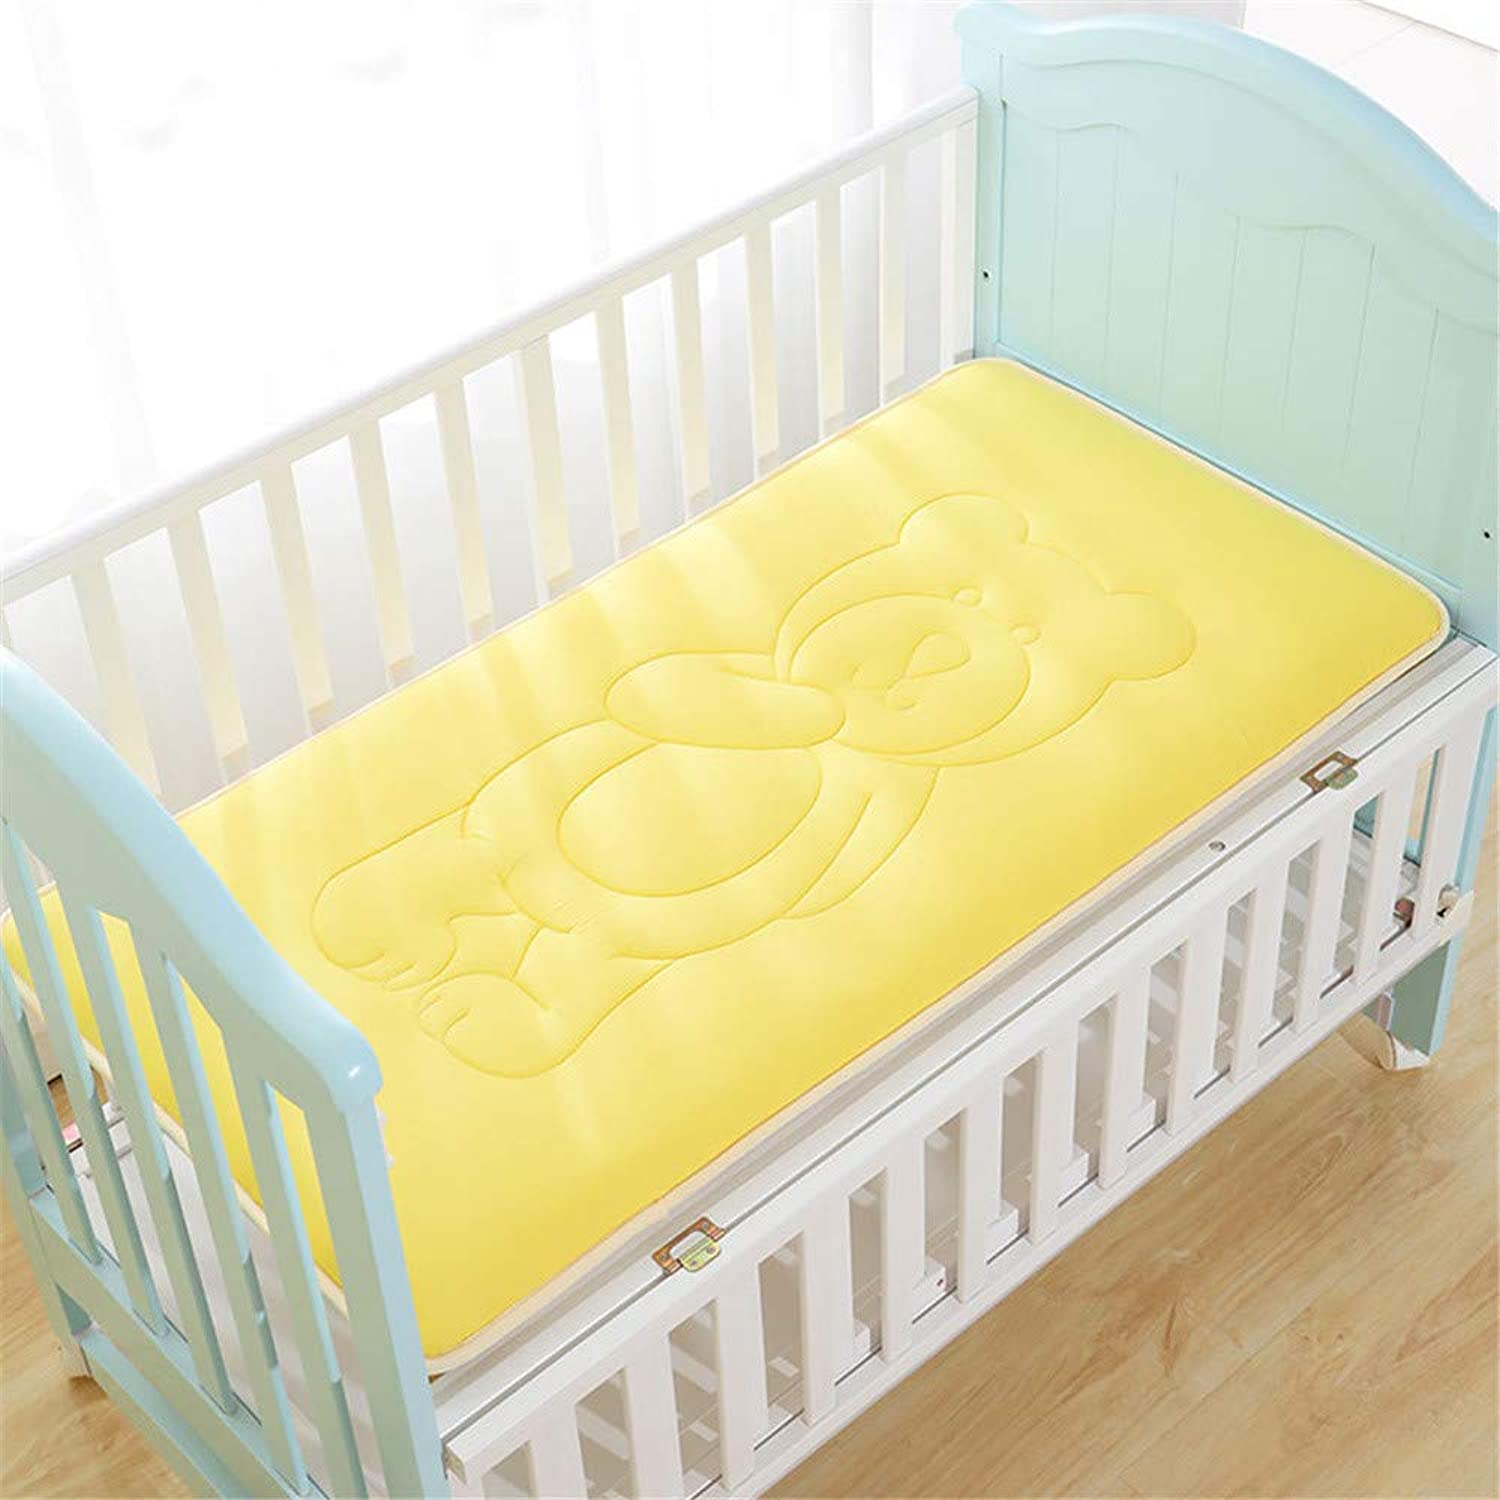 Vero Viva Bedding Cotton Baby Slip Bed Mattress Washable Breathable Sleeping Pad Cover for Kids,Super Soft Warm(31.5 x59 ,Yellow)